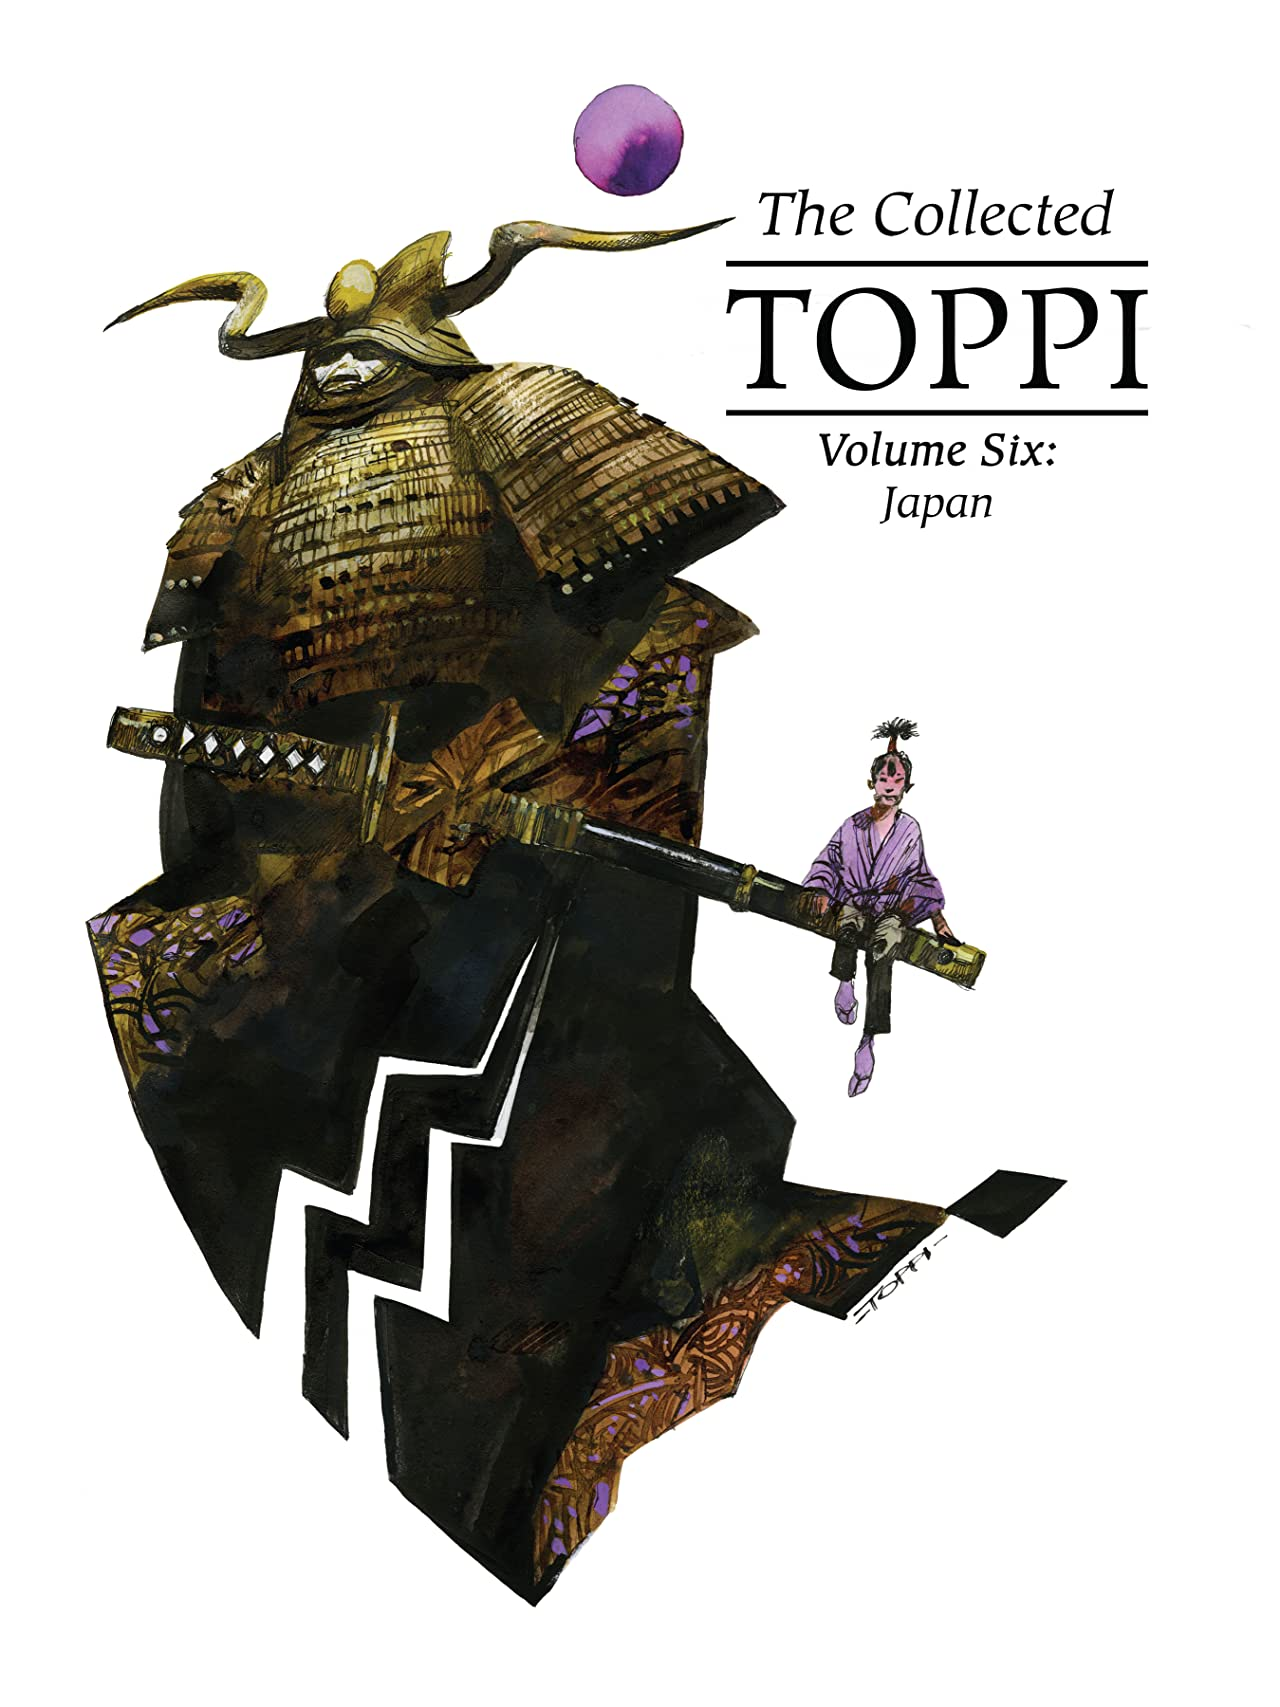 The Collected Toppi OGN Vol. 6: Japan